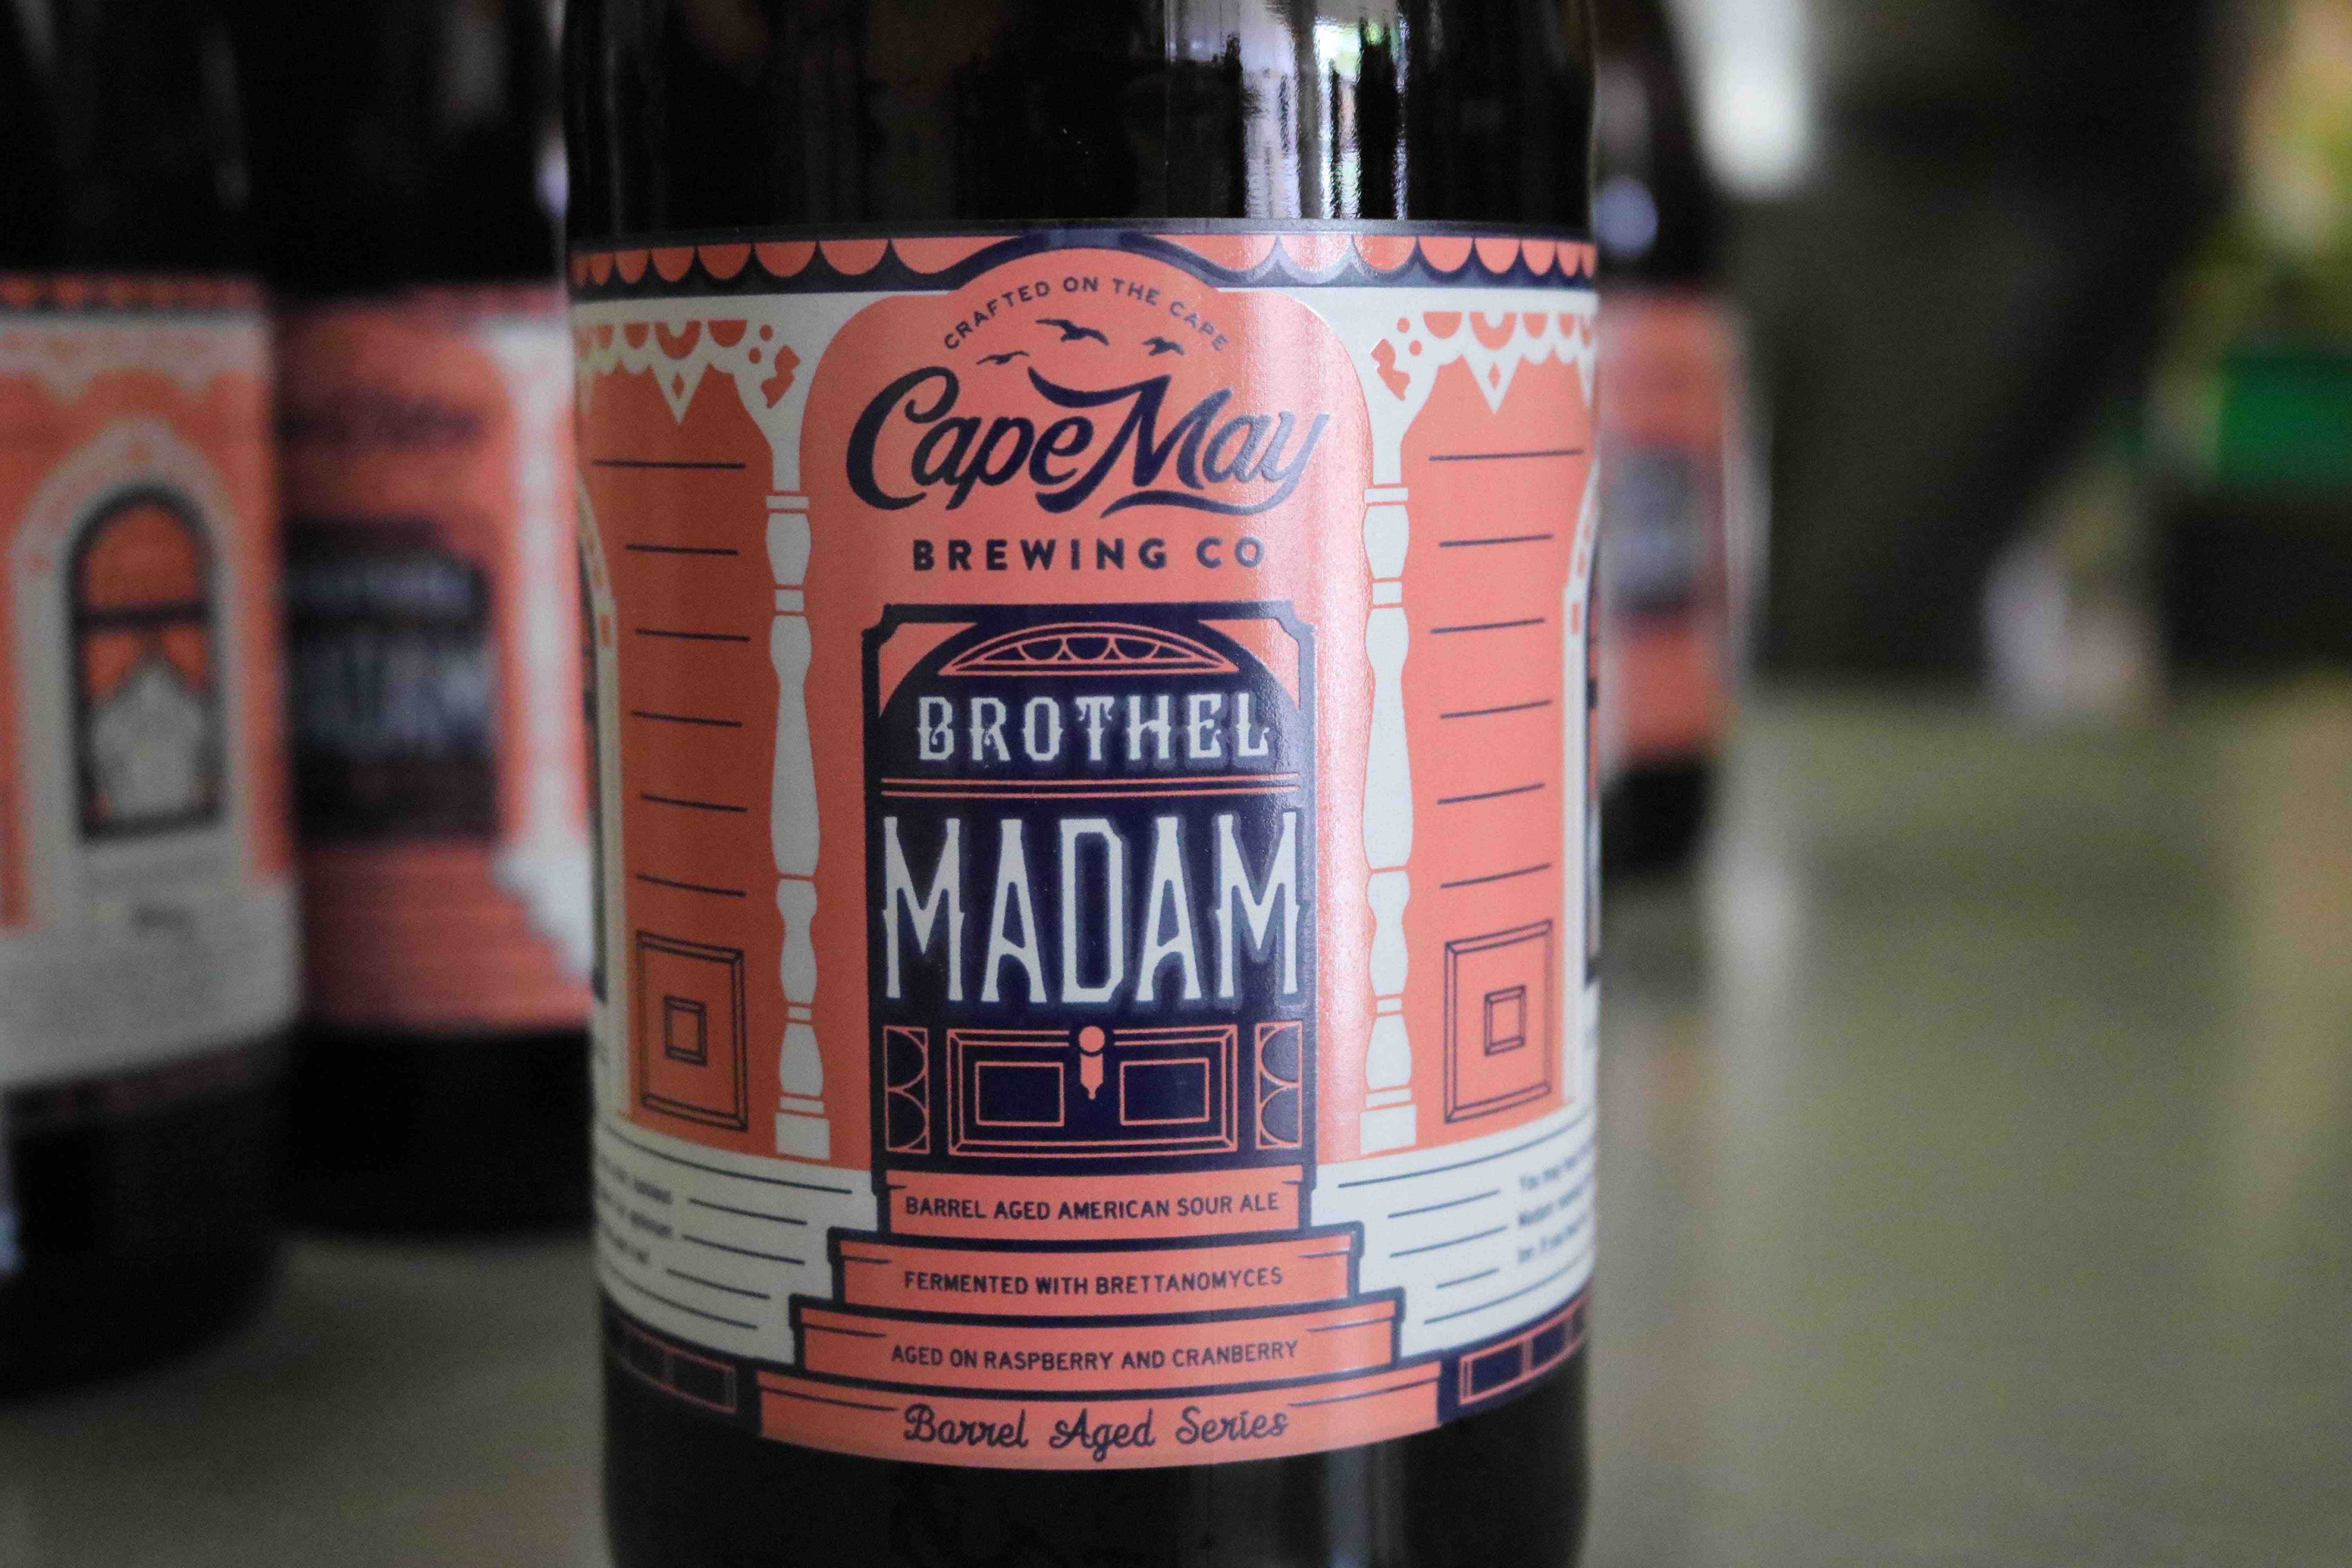 Cape-May-Brewing-Company-Brothel-Madam-copy-2